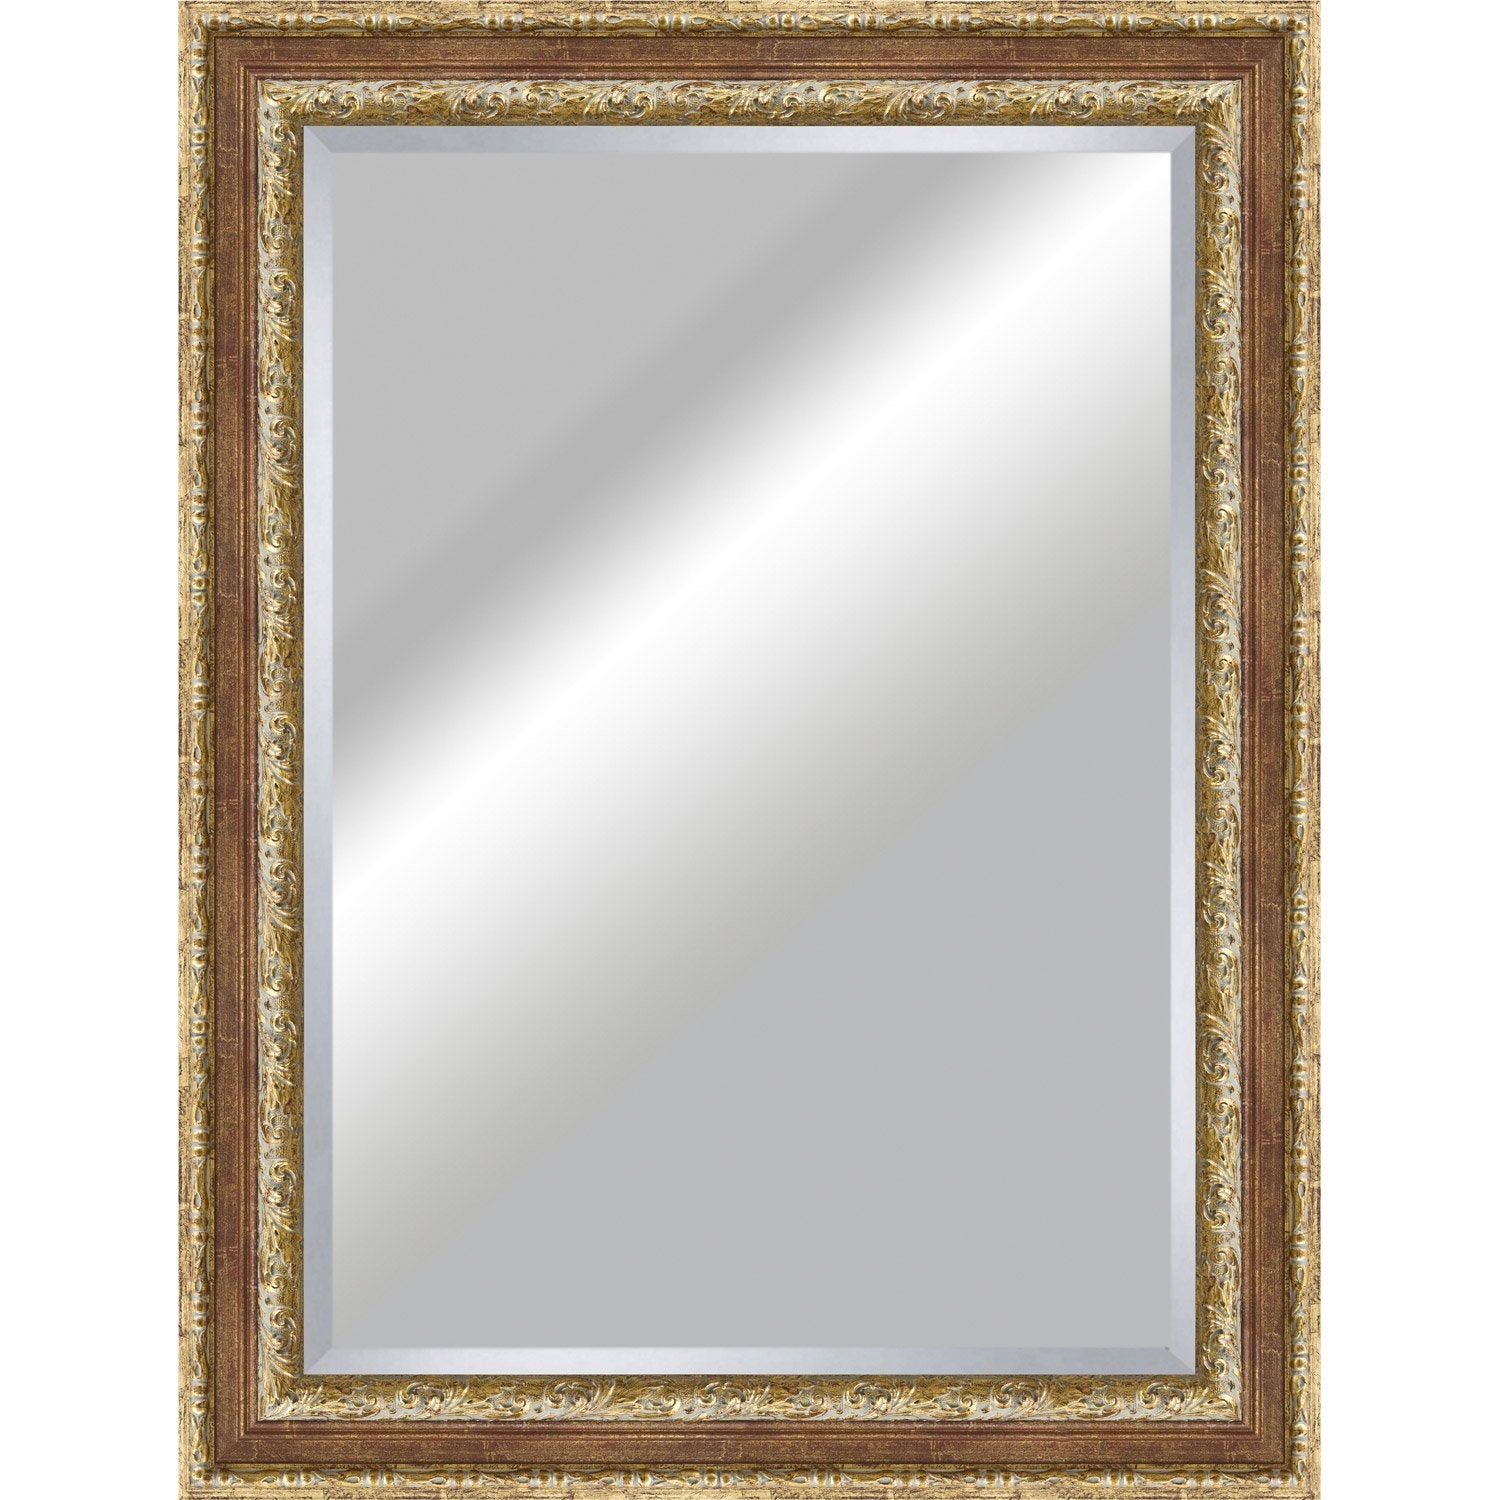 Miroir tradition rouge 50x70 cm leroy merlin - Leroy merlin mirroir ...